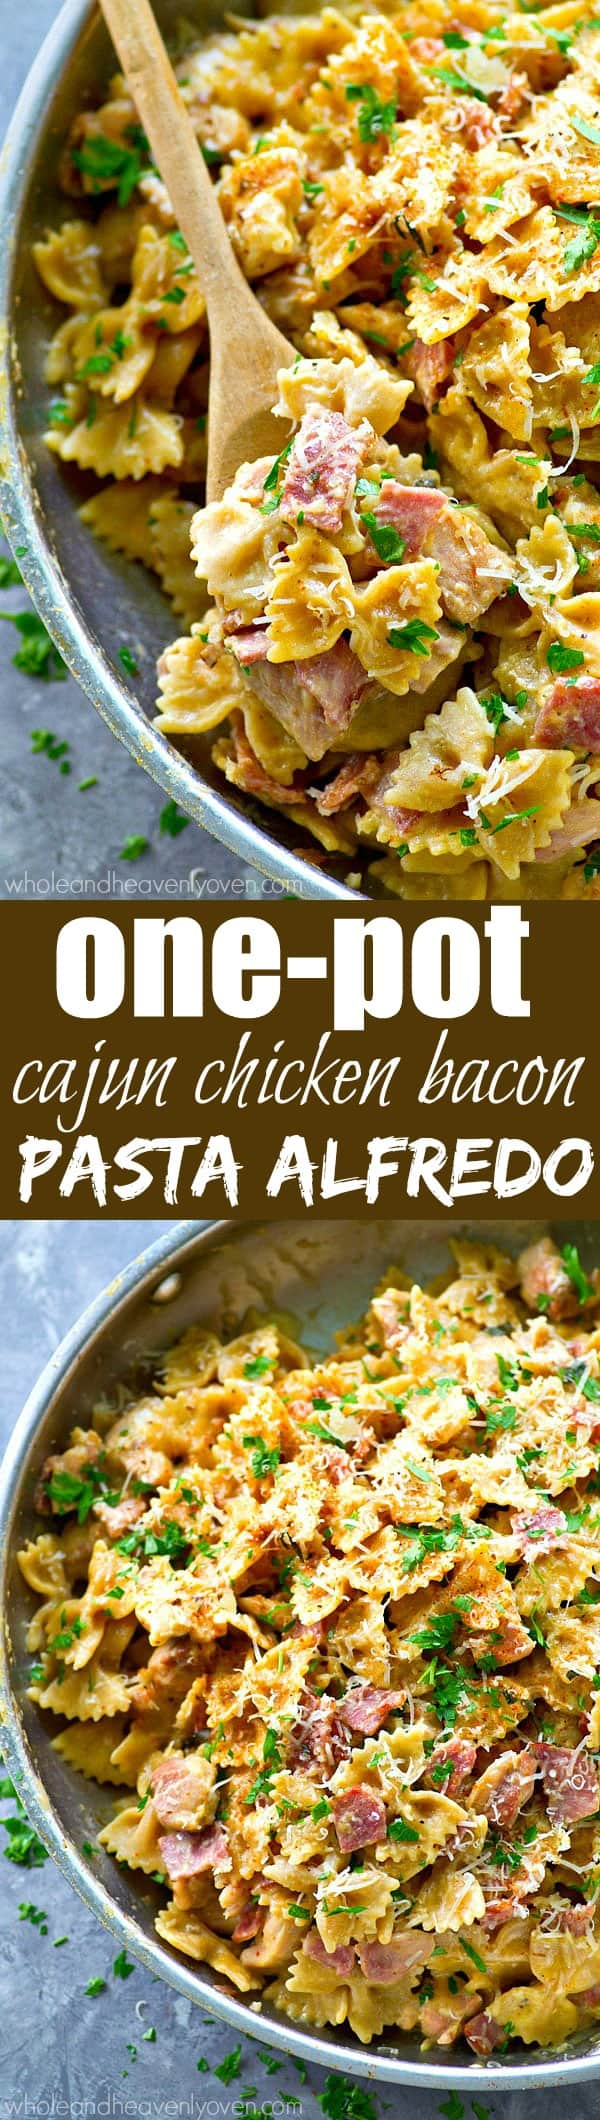 Ready for the ultimate one-pot dinner? This Cajun chicken pasta alfredo is unbelievably simple to throw together and absolutely the best kind of comfort food.--- It's on the dinner table in only 30!